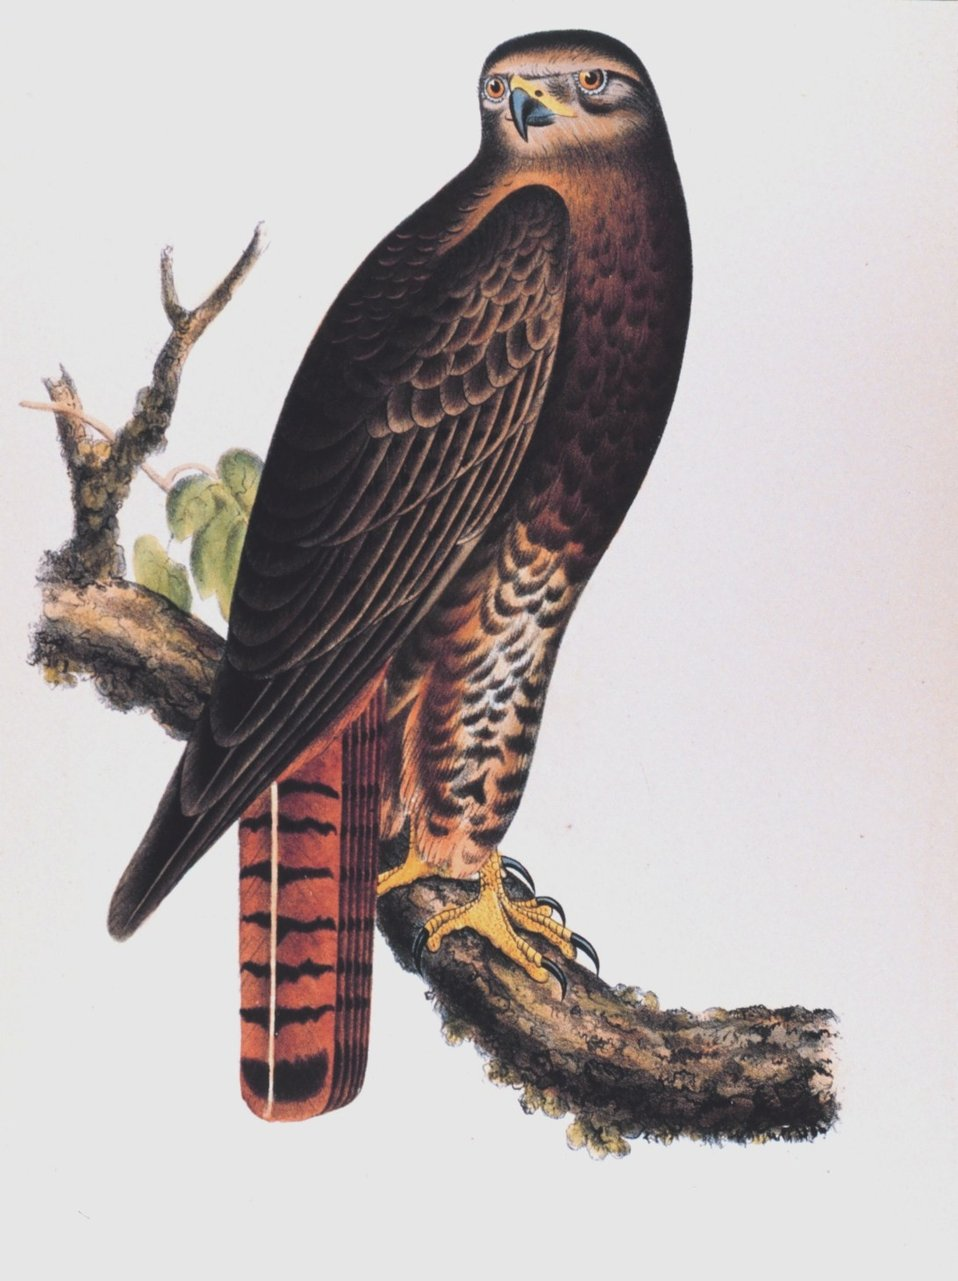 Buteo calurus, Cassin.  Red-tailed Black Hawk. This image was included in:  Reports of Explorations and  Surveys ....  Volume X. 1859.  Plate XIV.  P. 16 of U. S. Pacific Railroad Explorations and Surveys 38th,39th, 41st Parallels.    Call Number F593 .U